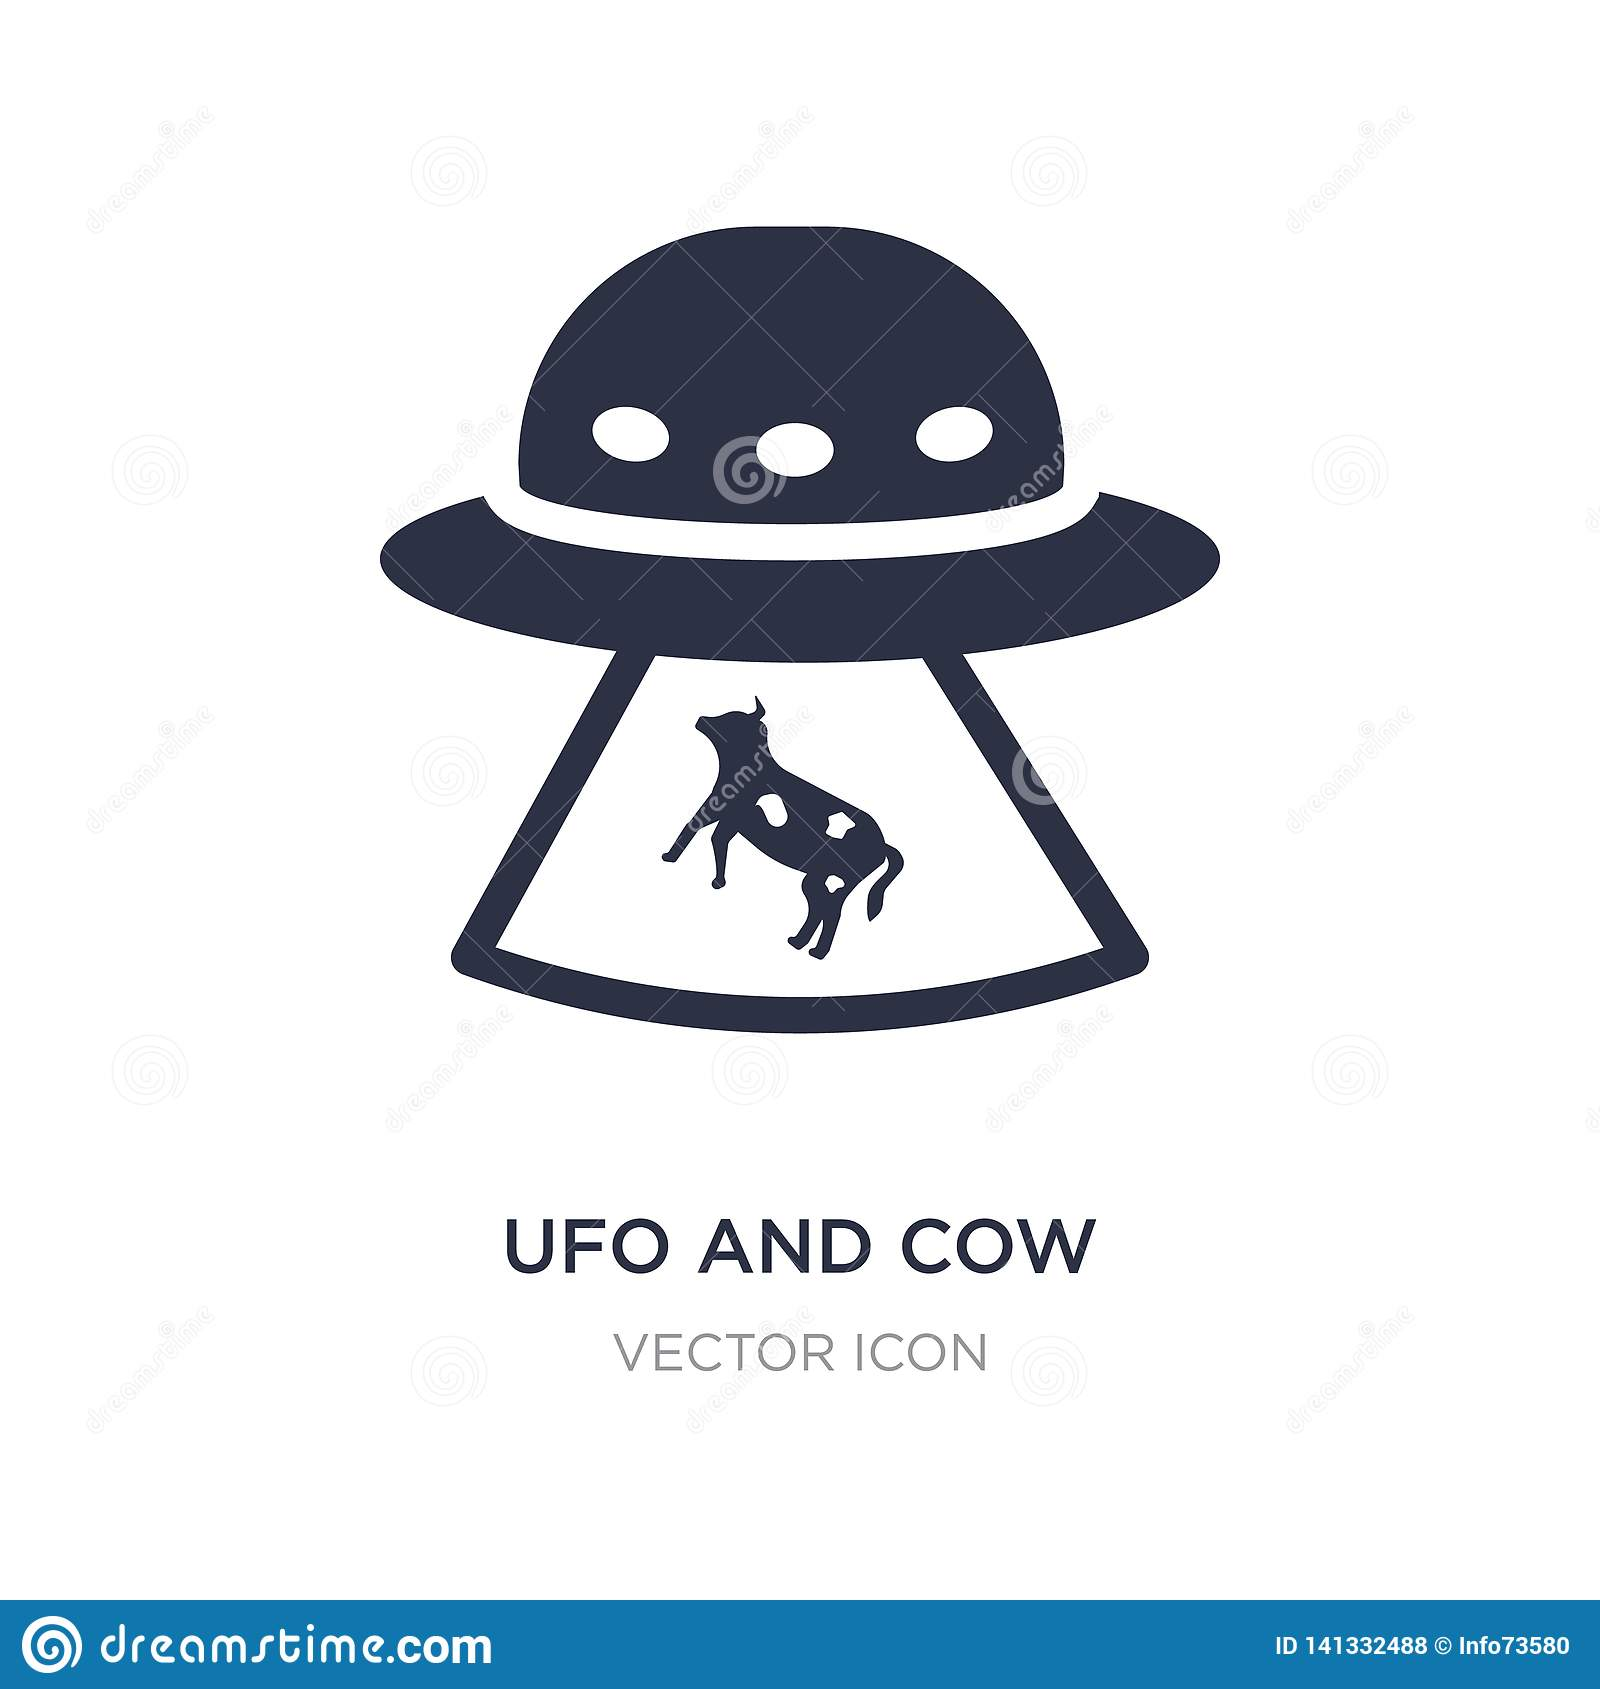 ufo and cow icon on white background. Simple element illustration from Astronomy concept